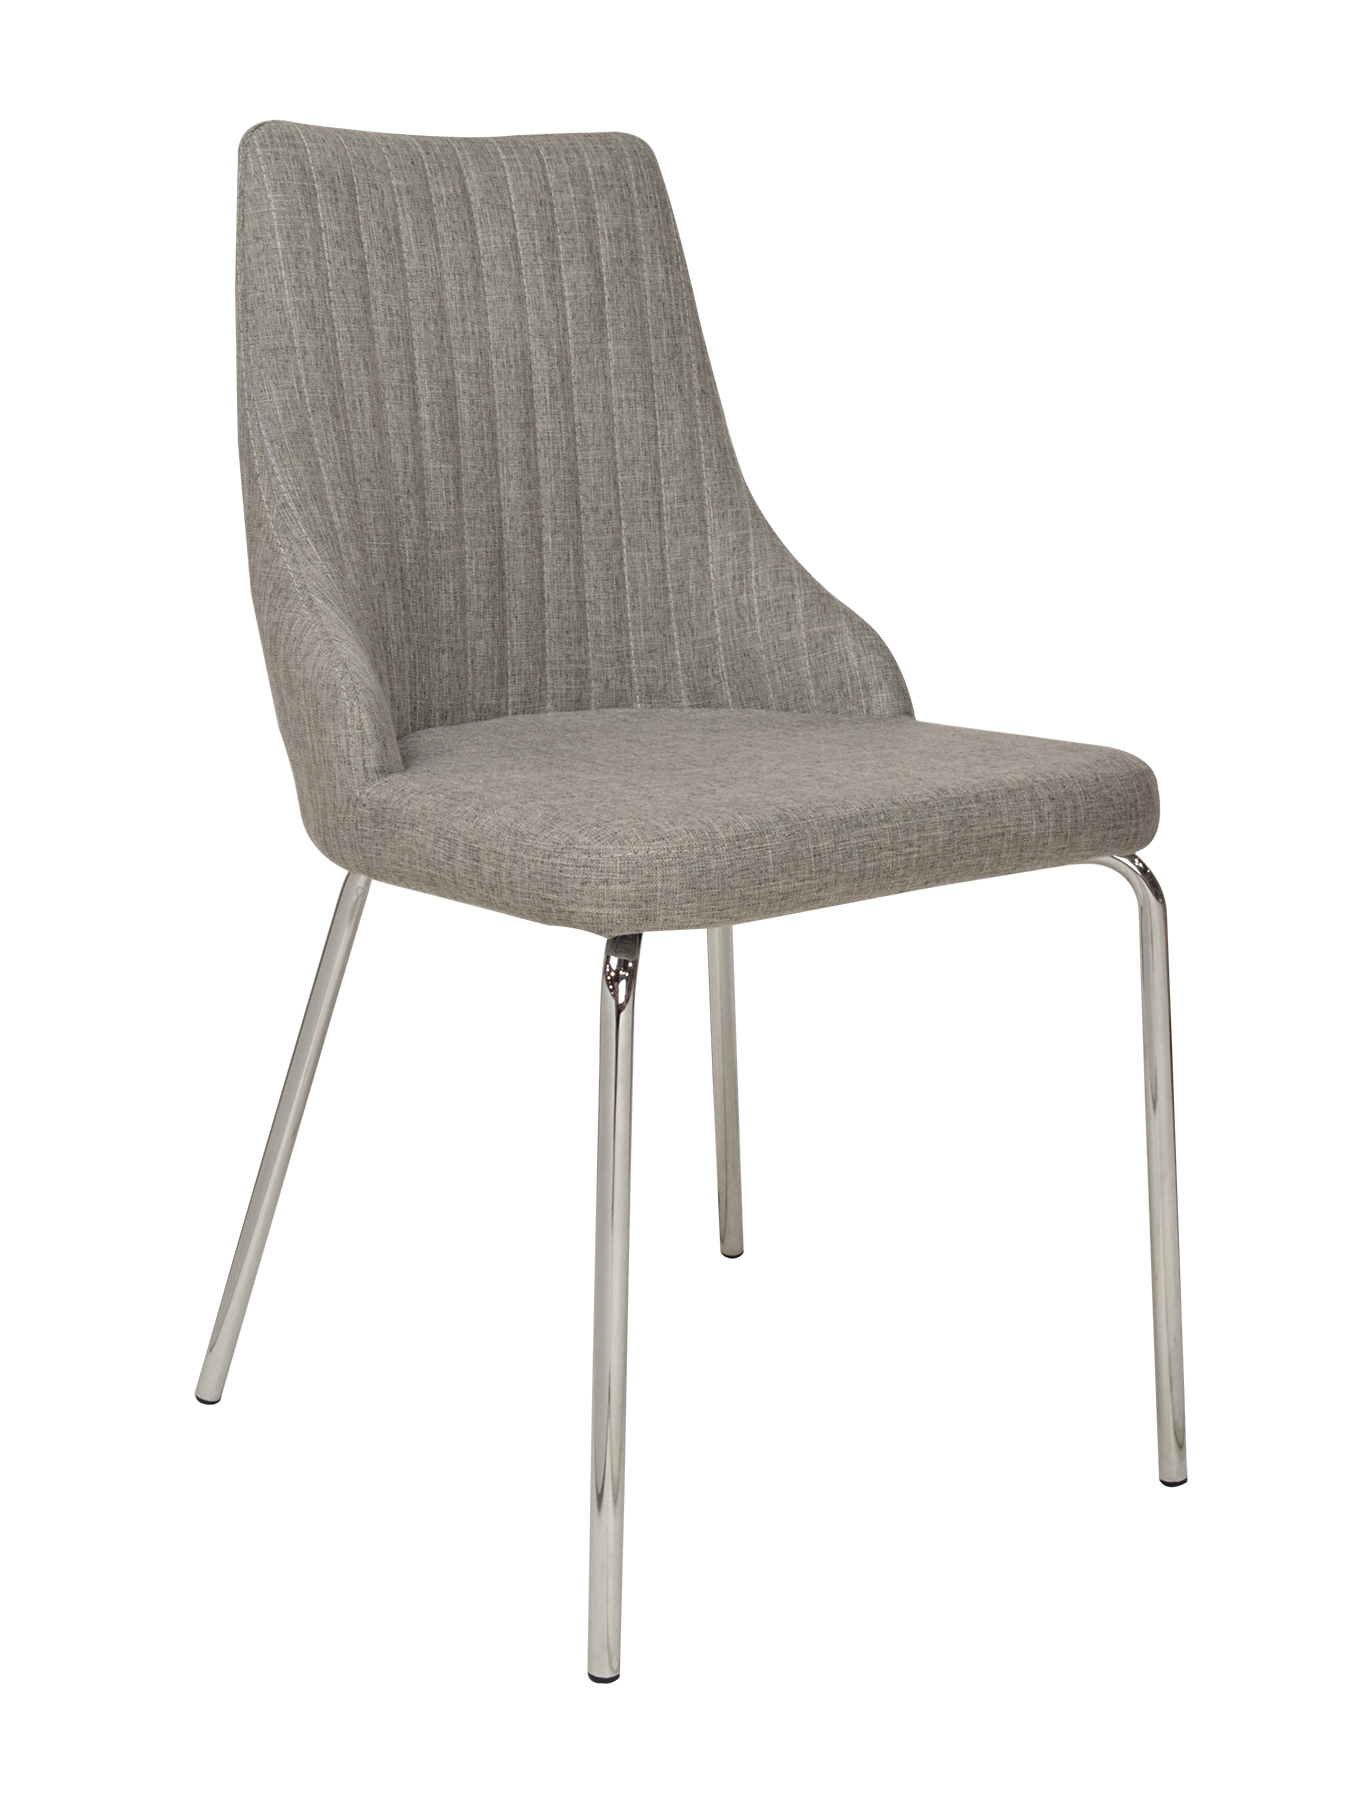 dining chair B514 back.jpg